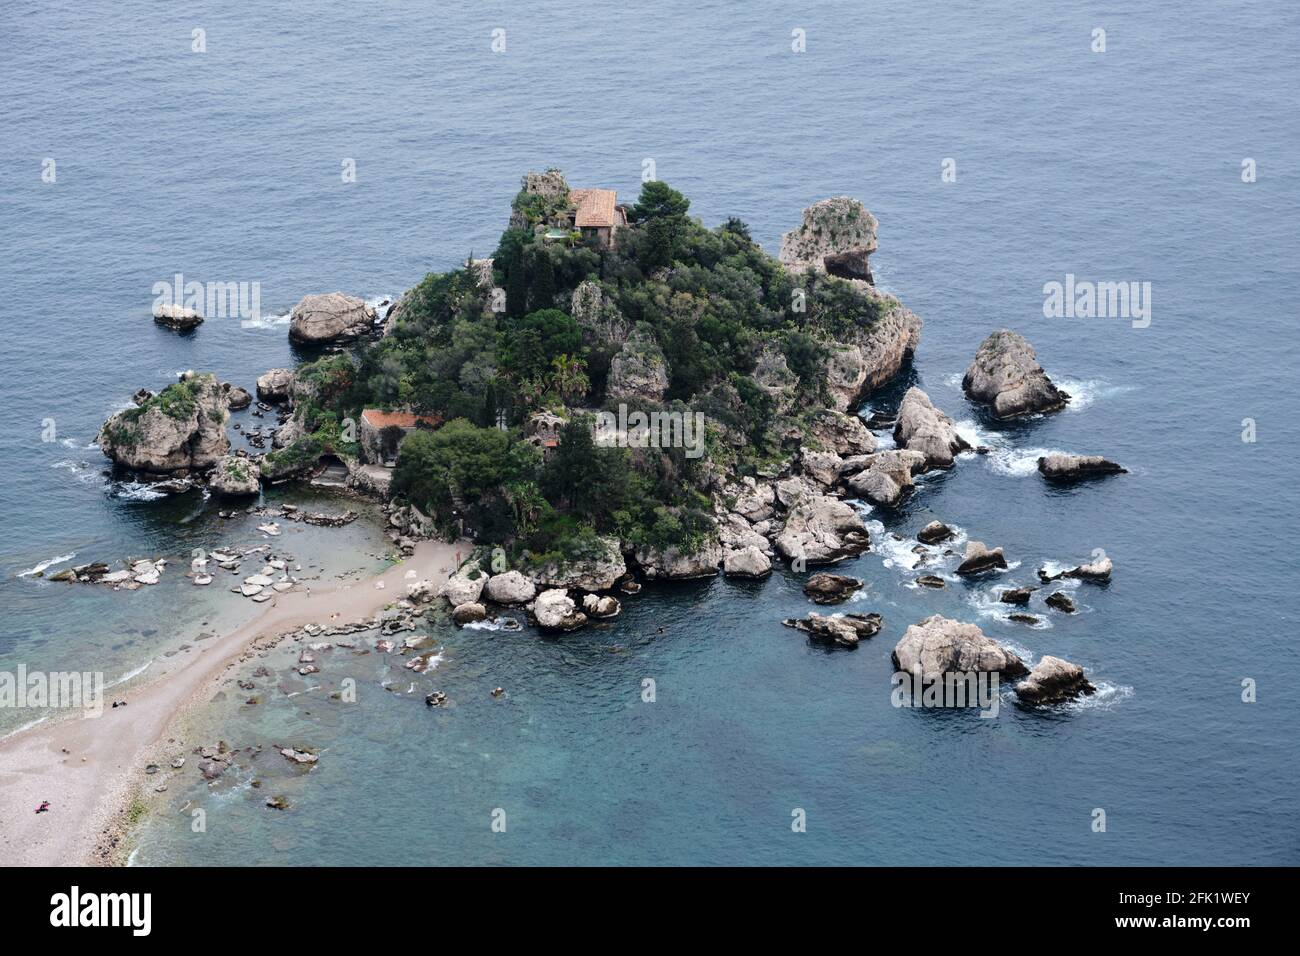 Isola Bella island near Taormina in Sicily, Italy. Known as the The Pearl of the Ionian Sea. Stock Photo